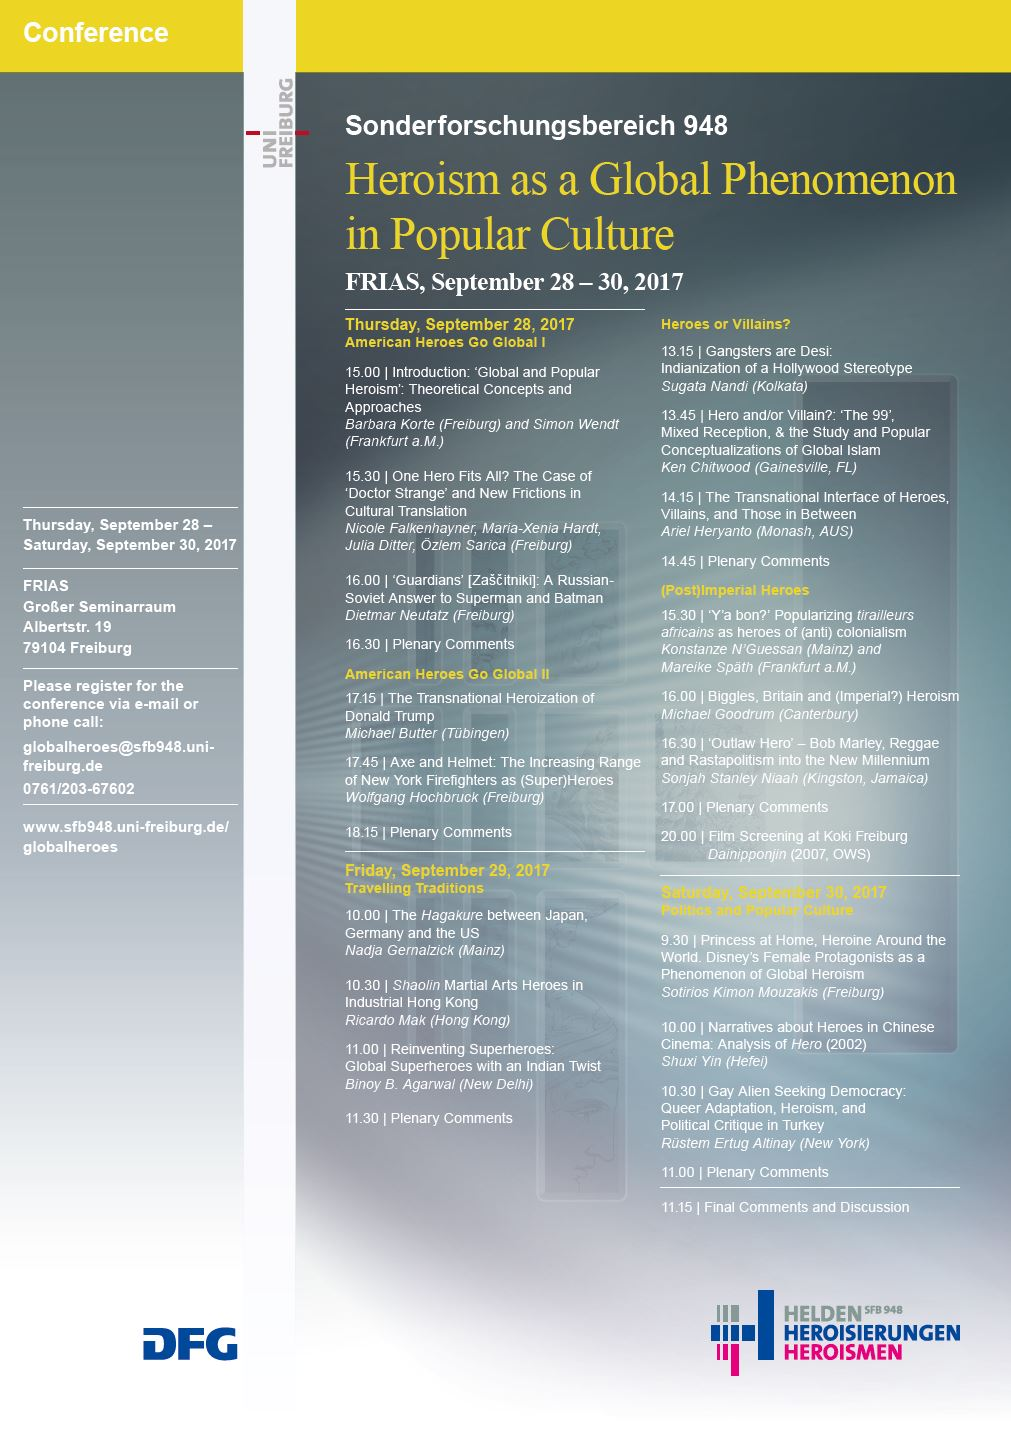 """Conference Program """"Heroism as a Global Phenomenon in Popular Culture"""""""